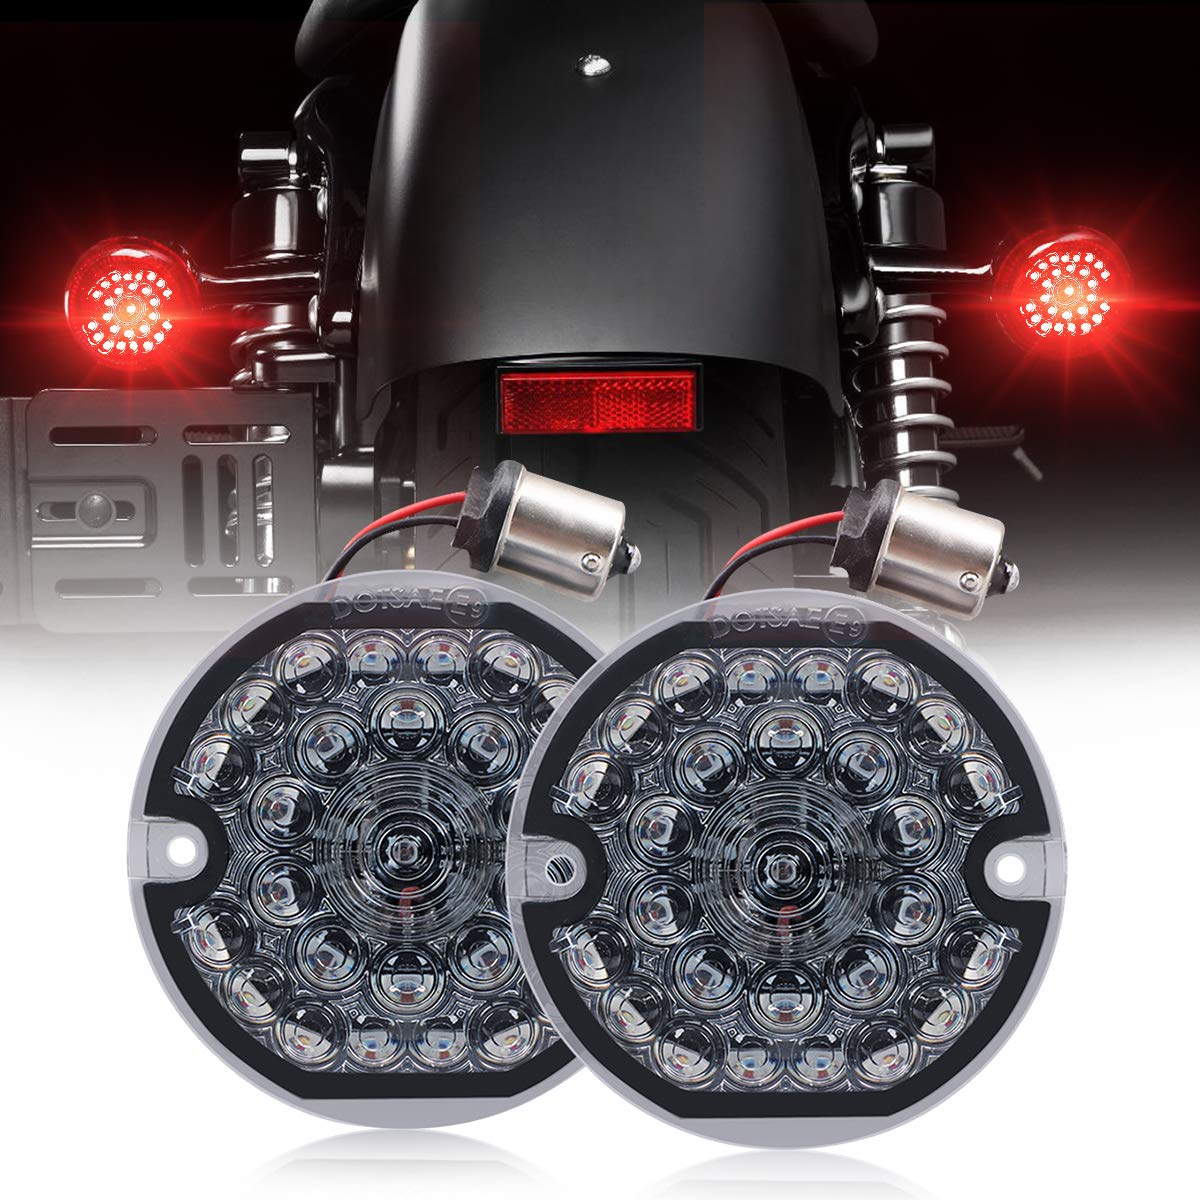 3-1/4 Inch Rear Led Turn Signal Flat Smoke Lens 1156 Base Bright Red Lamp for Harley Motorcycle Road Glide Road King Softail Ultra Classic Ultra Limited Electra Glide (1156 Rear, Red) by AUDEXEN